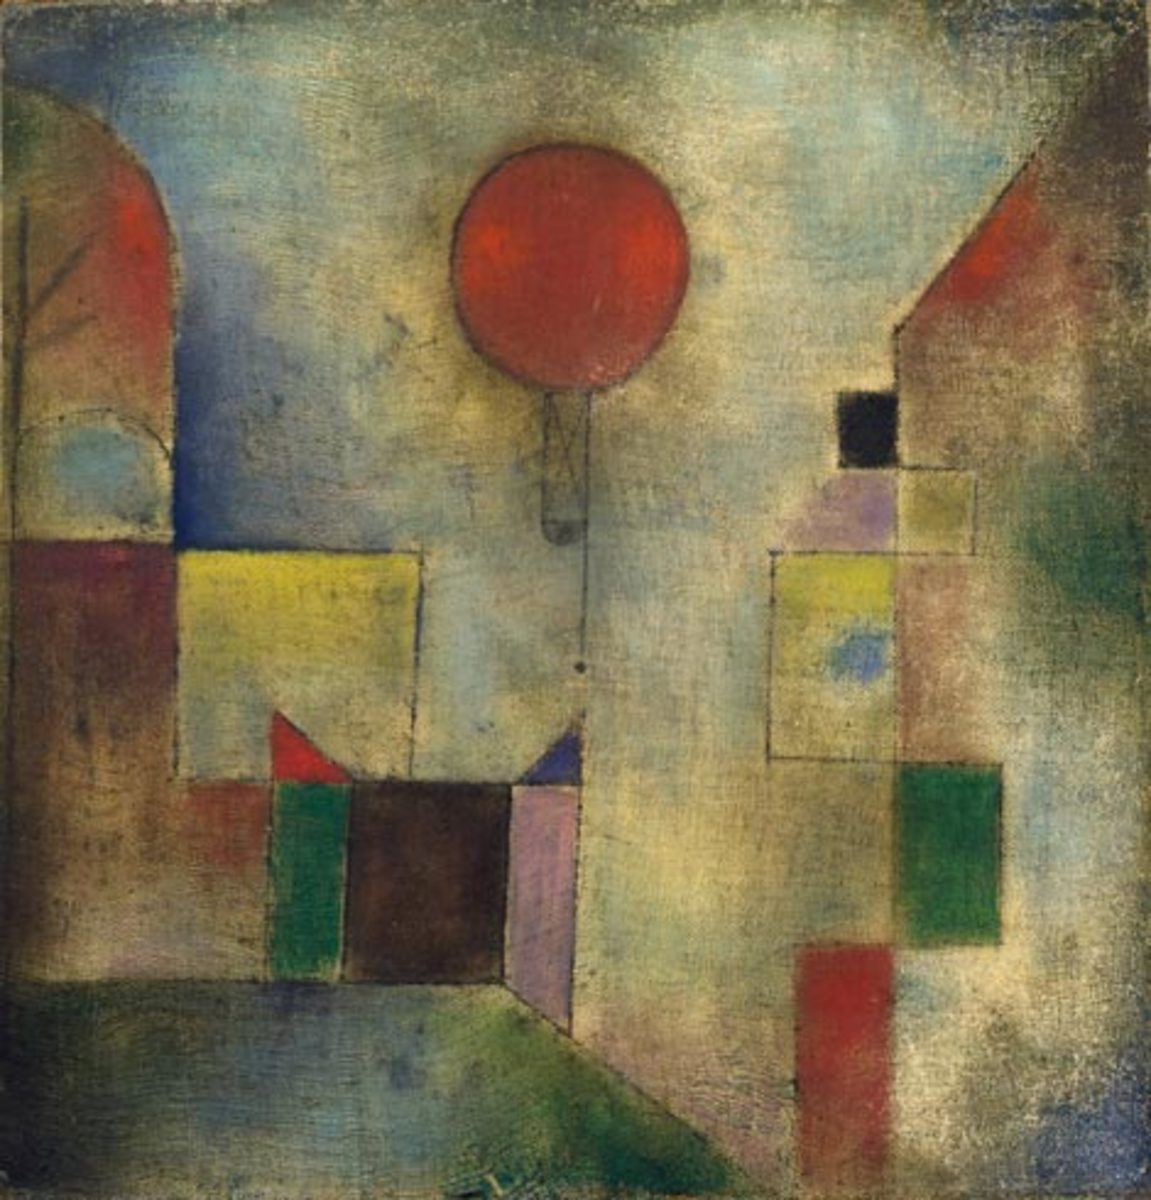 Many of the contemporary art movements of his day influenced Klee. He also made a profound study of color theory.